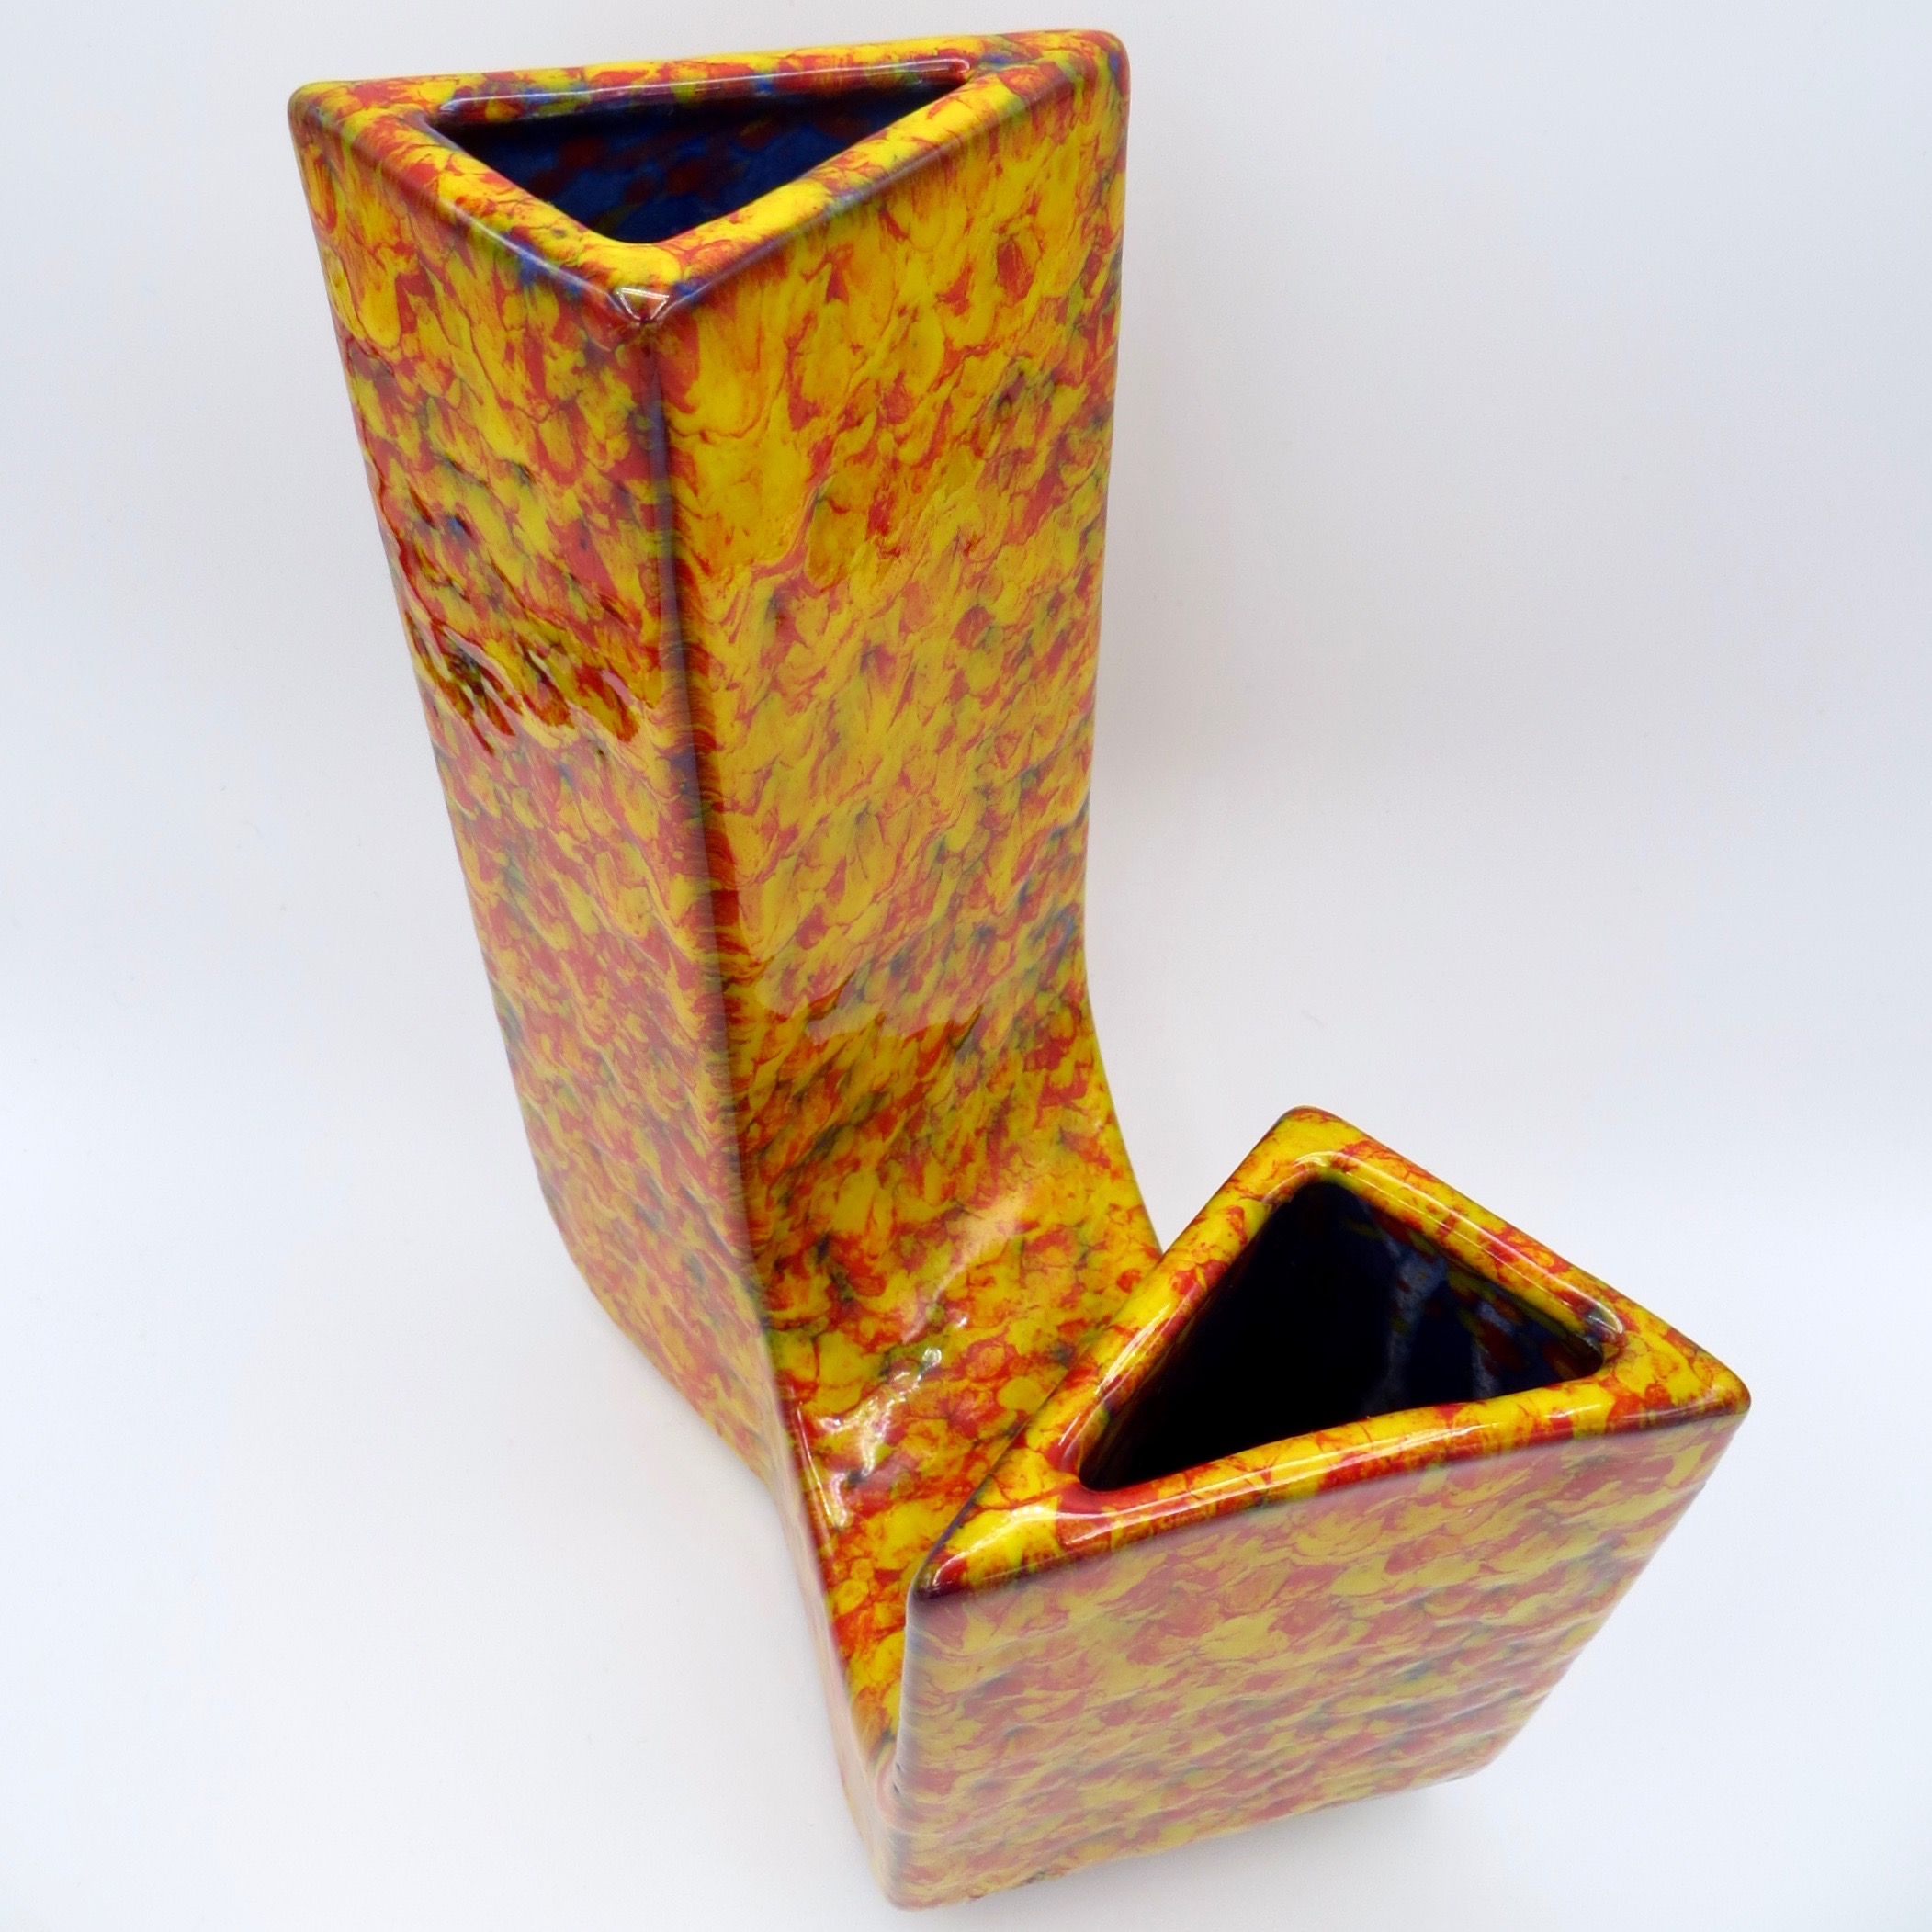 Orange Speckle Ceramic Vase